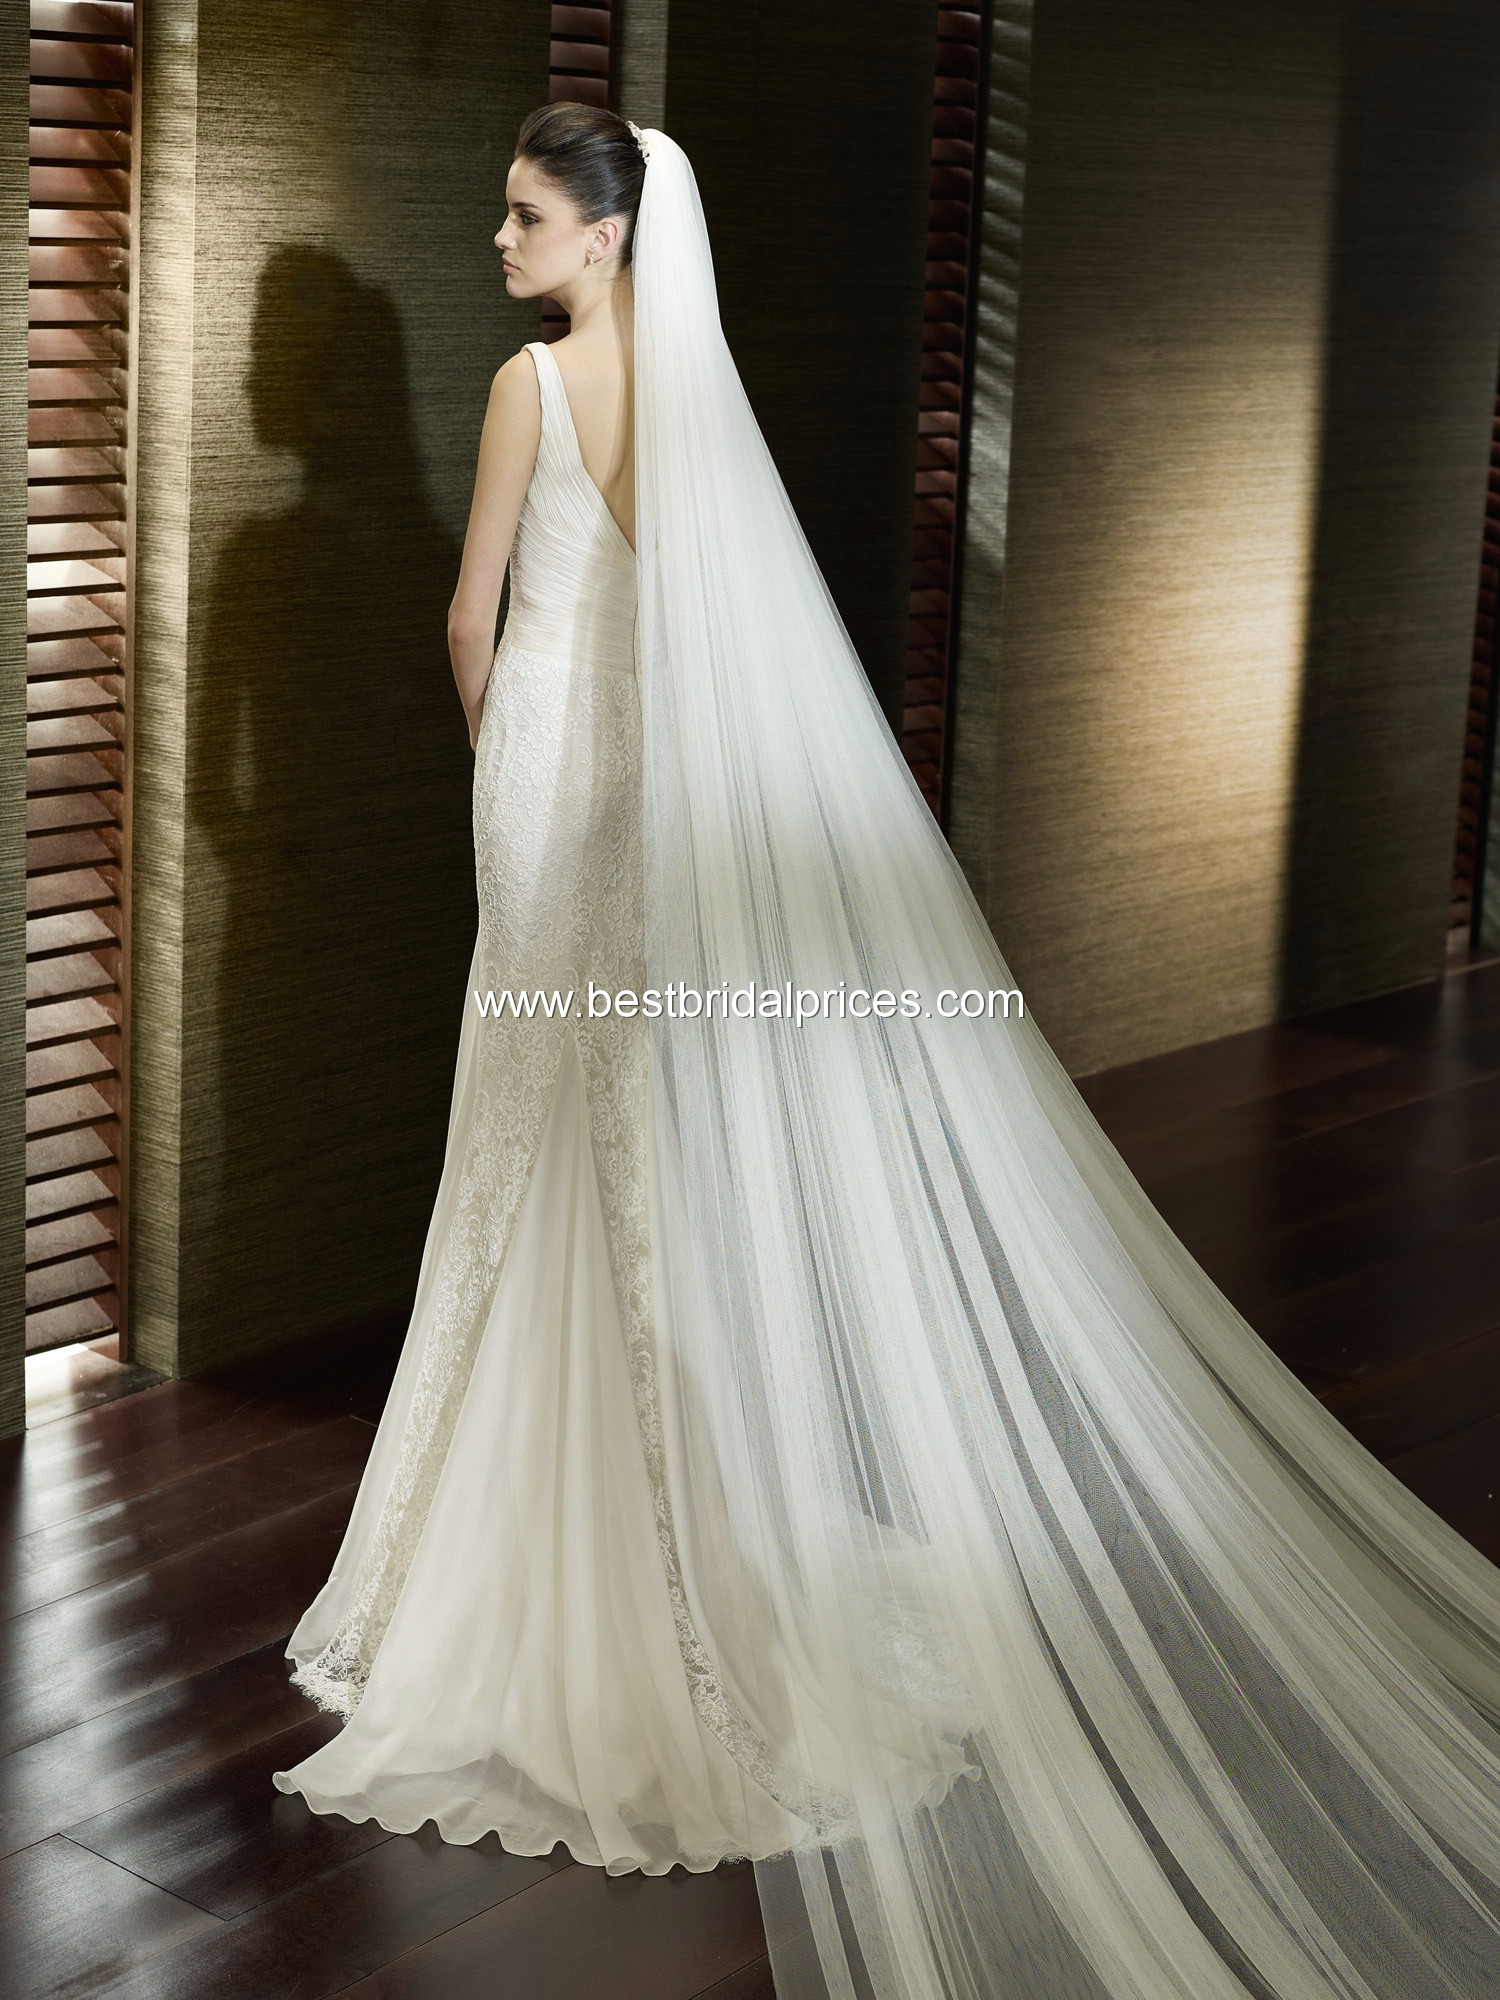 sanpatrick wedding dresses photo - 1